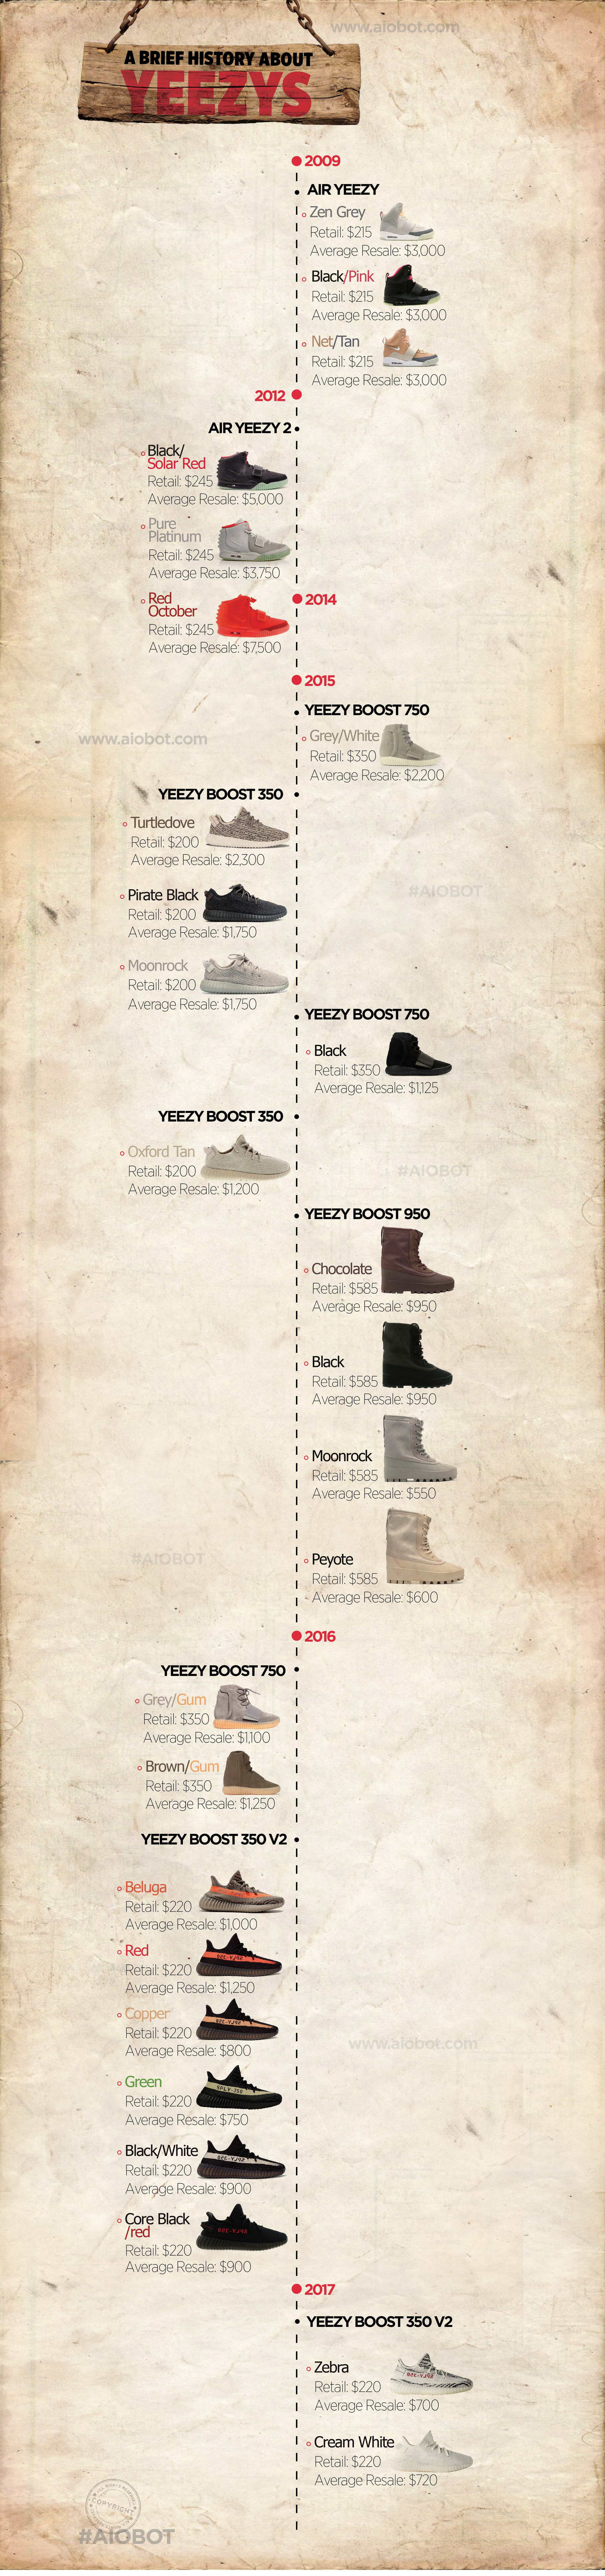 history of yeezy shoes off 64% - www